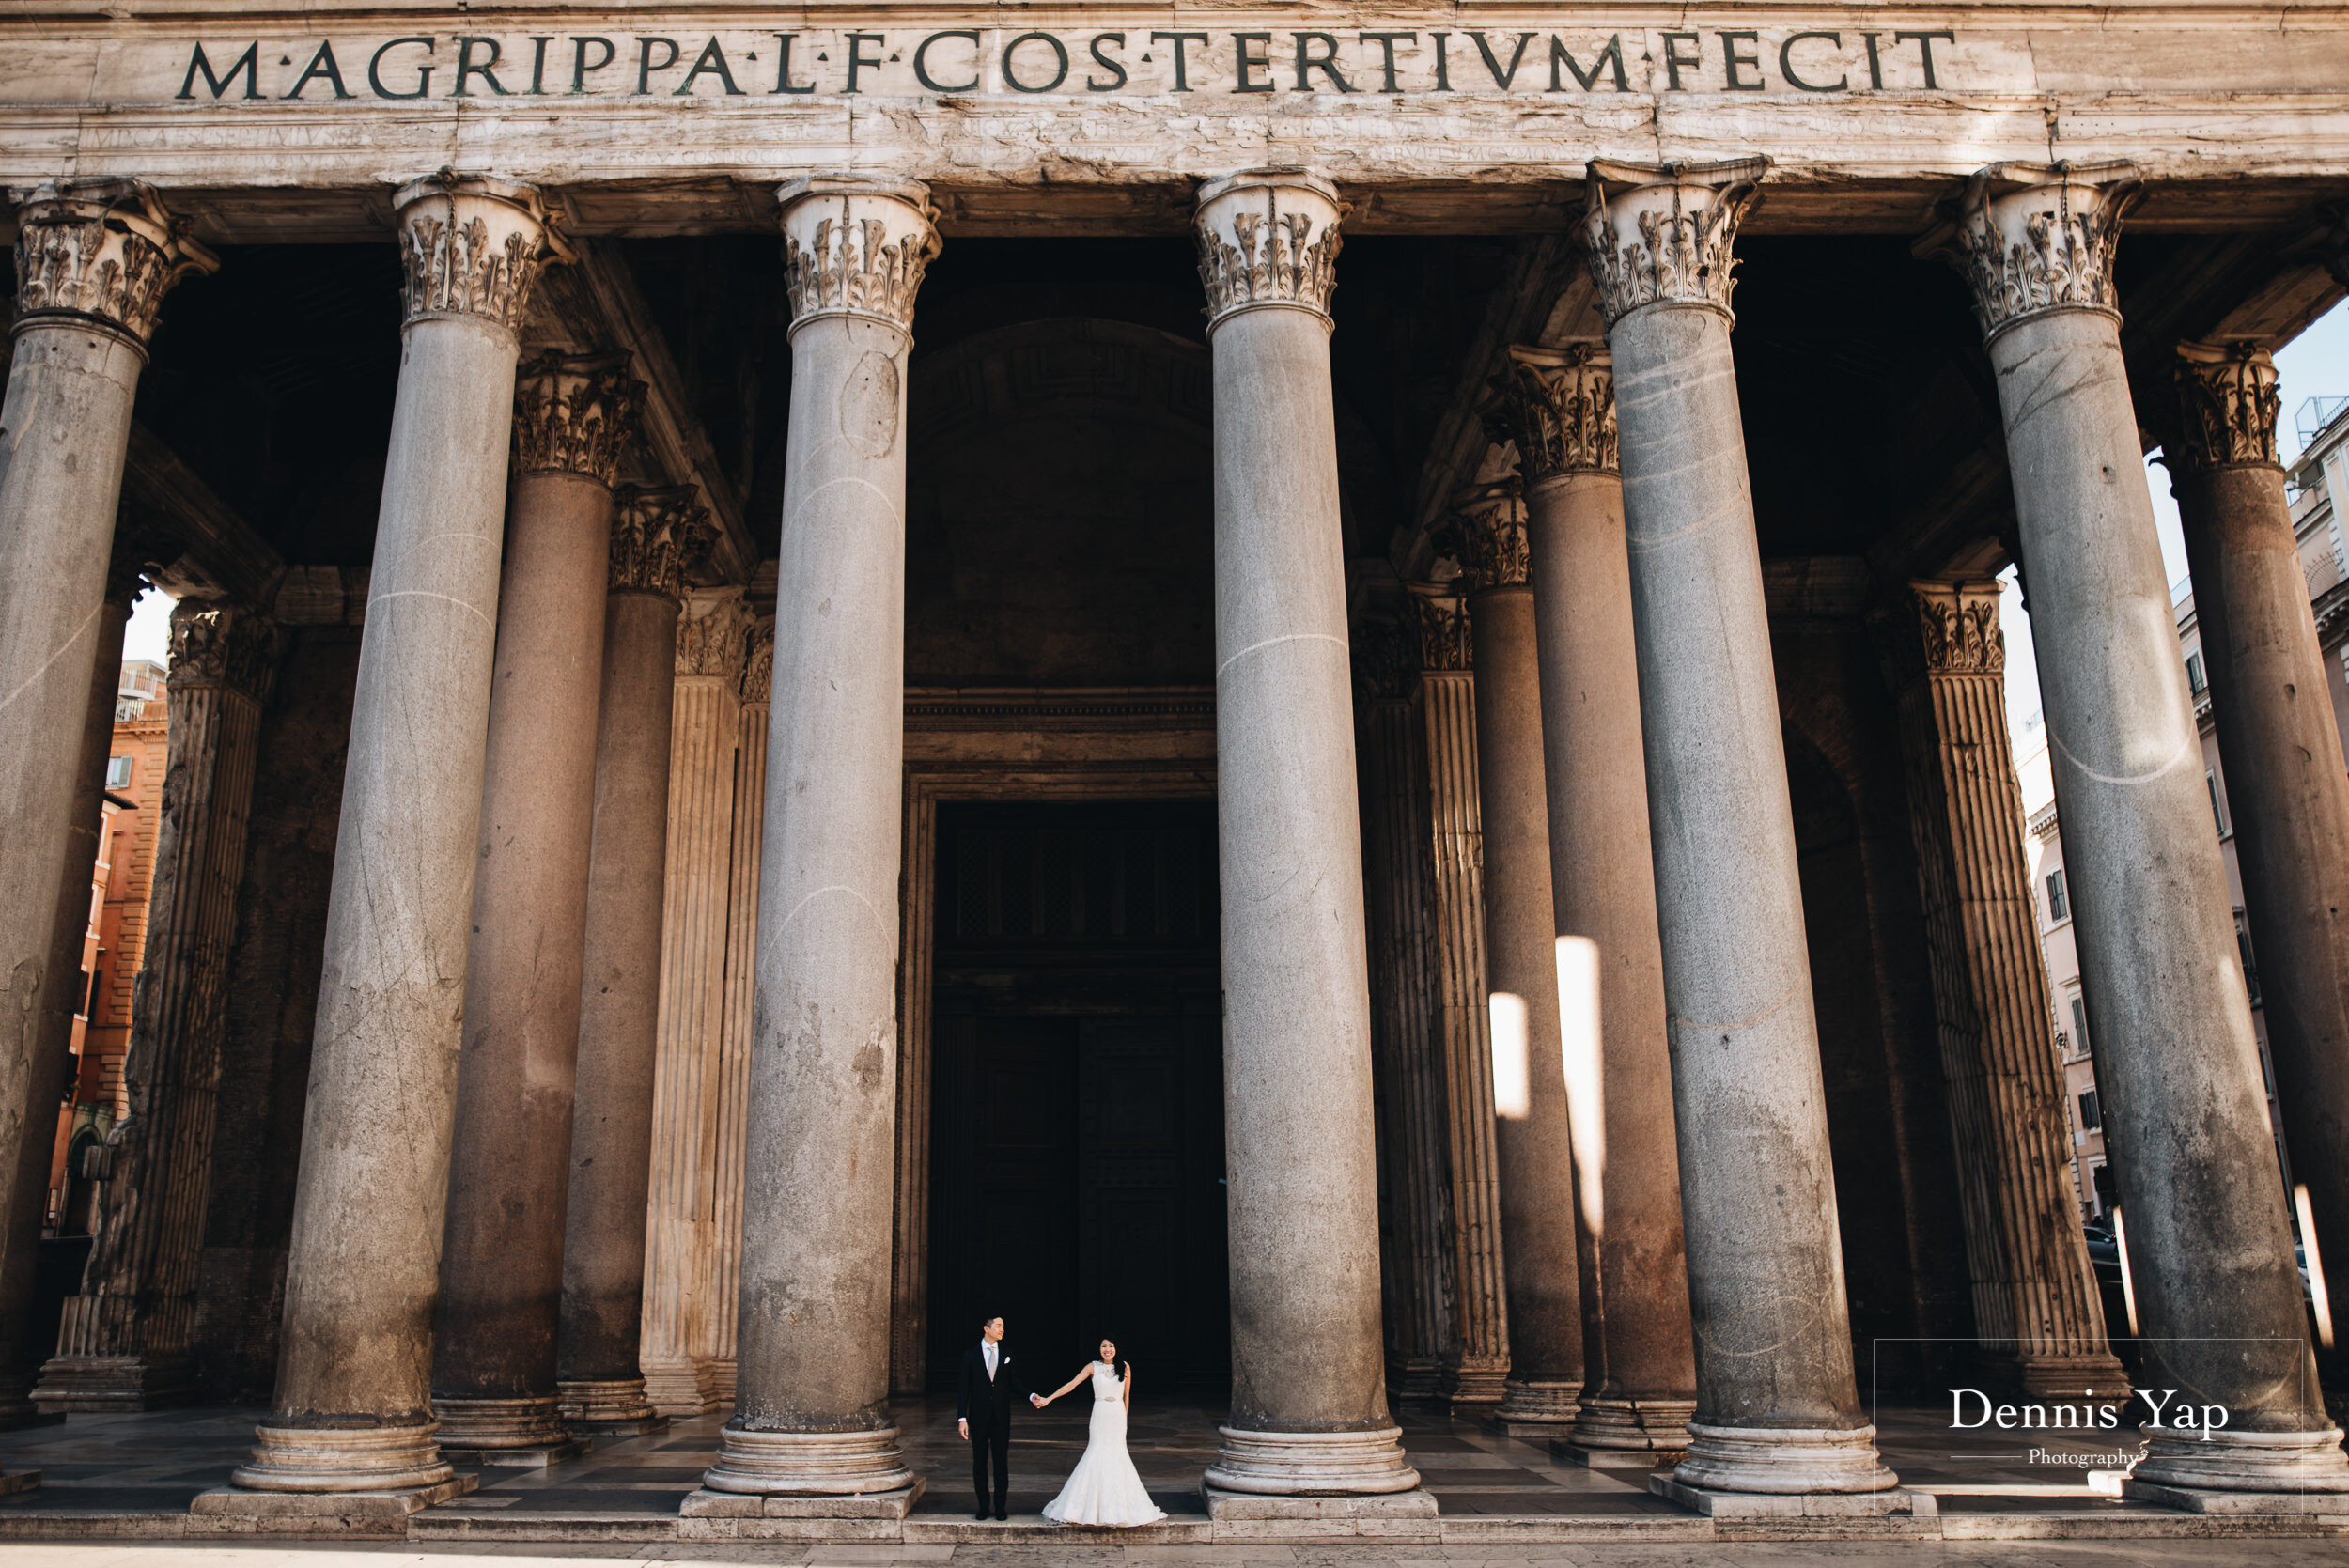 alex chloe pre wedding rome italy dennis yap photography overseas portrait classic beloved-118.jpg